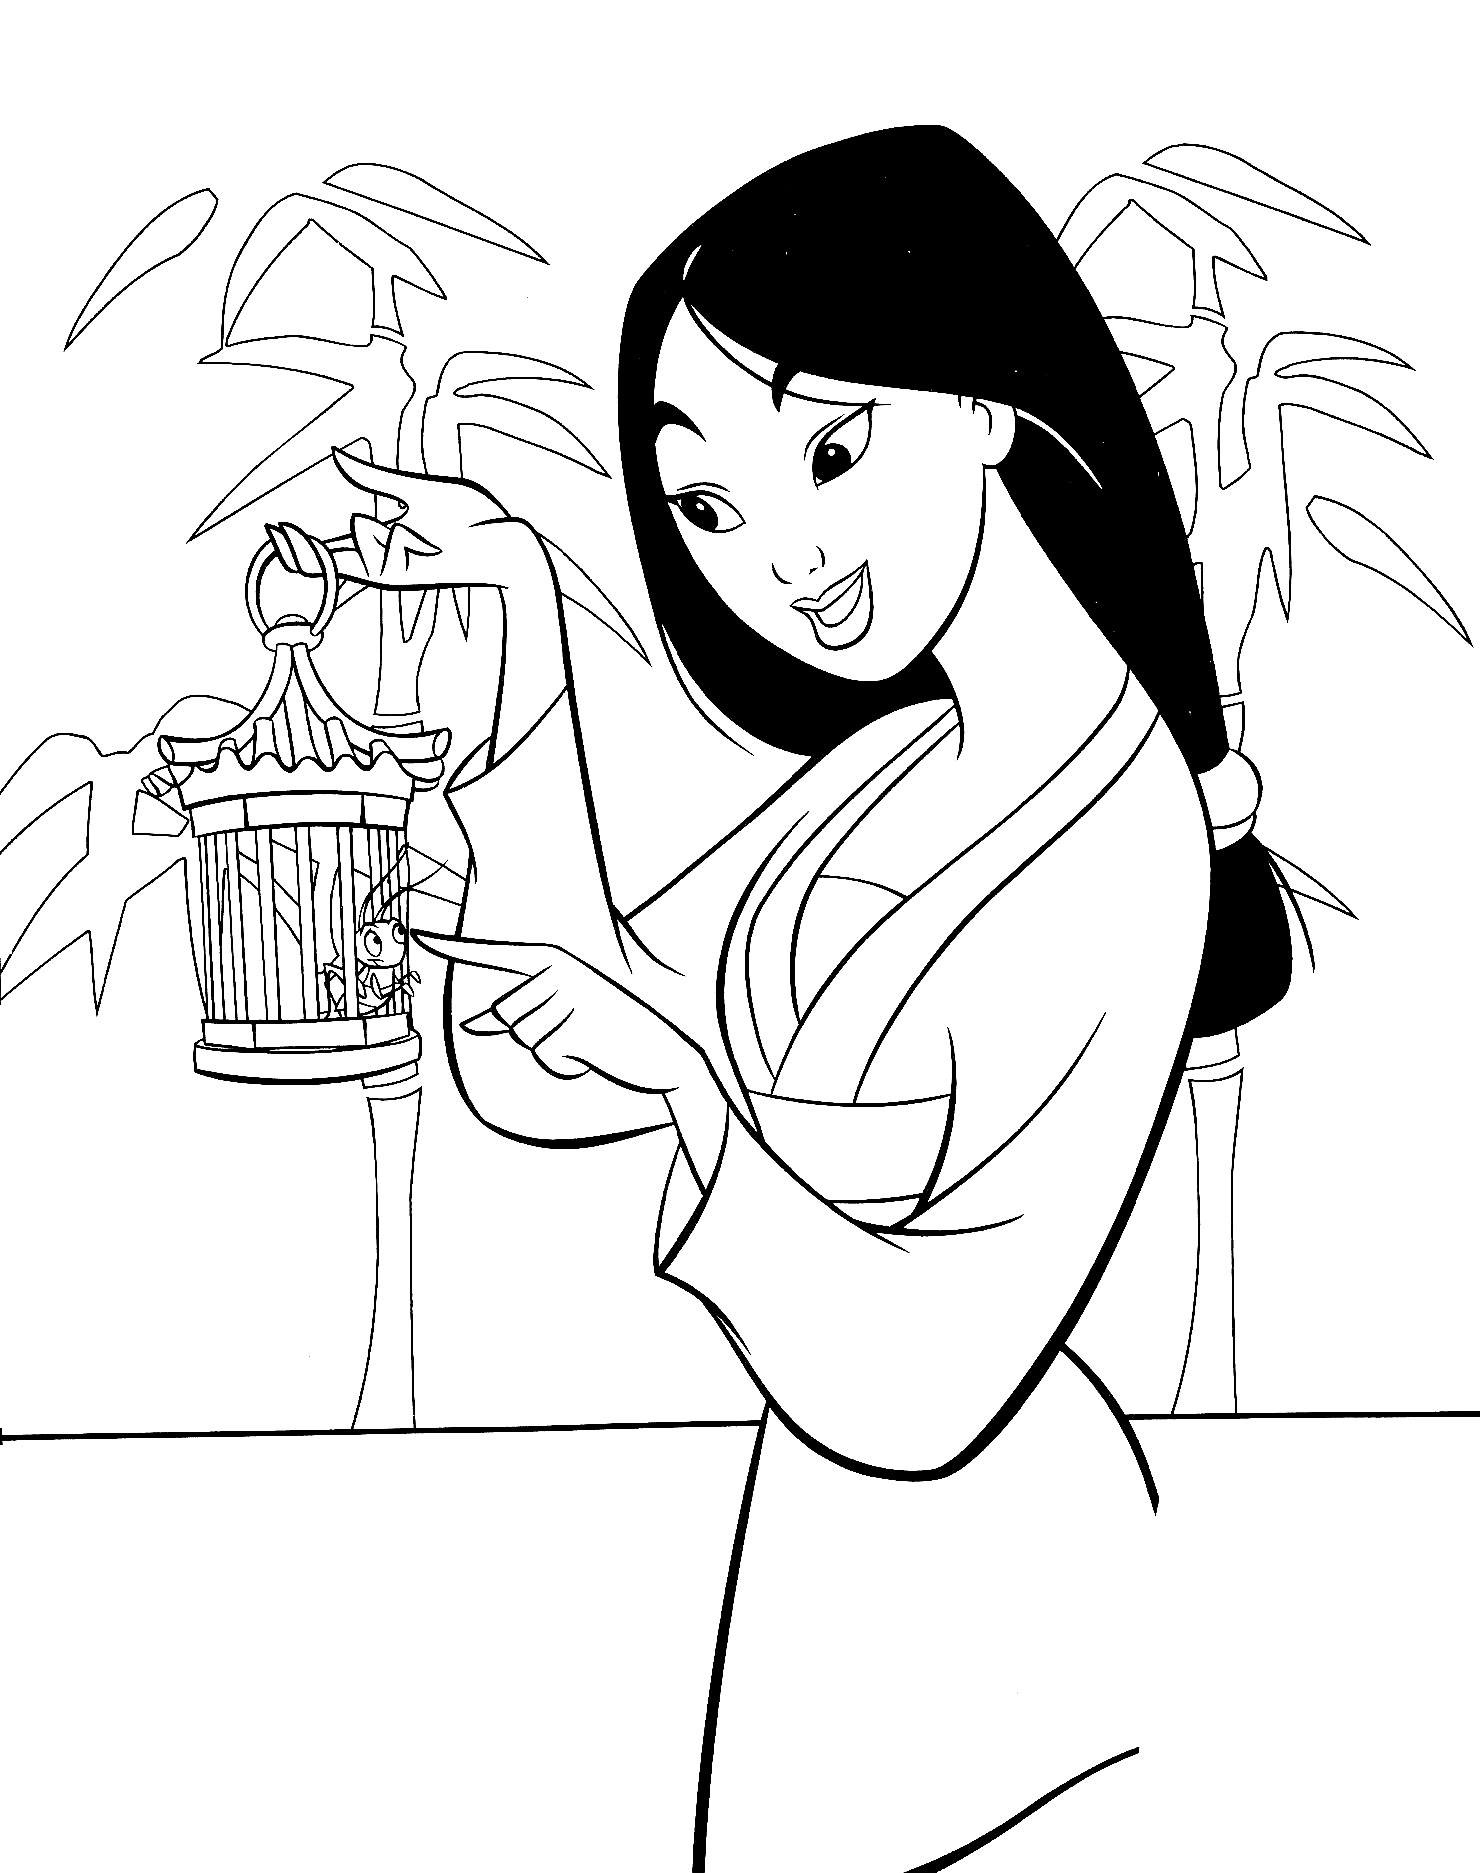 Printable Mulan coloring page to print and color